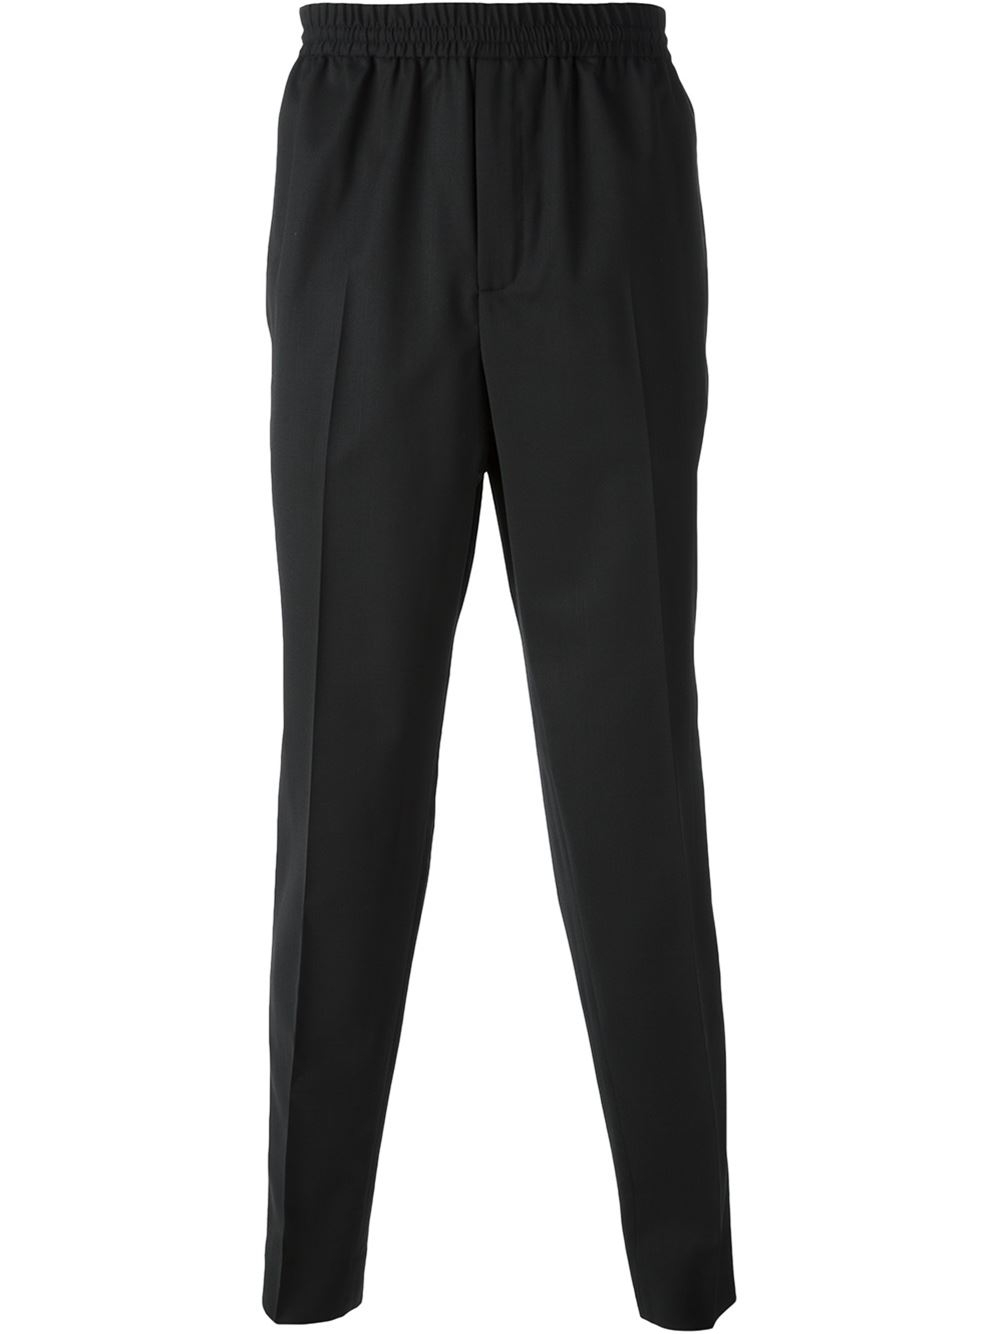 Shop black white tapered pants at Neiman Marcus, where you will find free shipping on the latest in fashion from top designers.